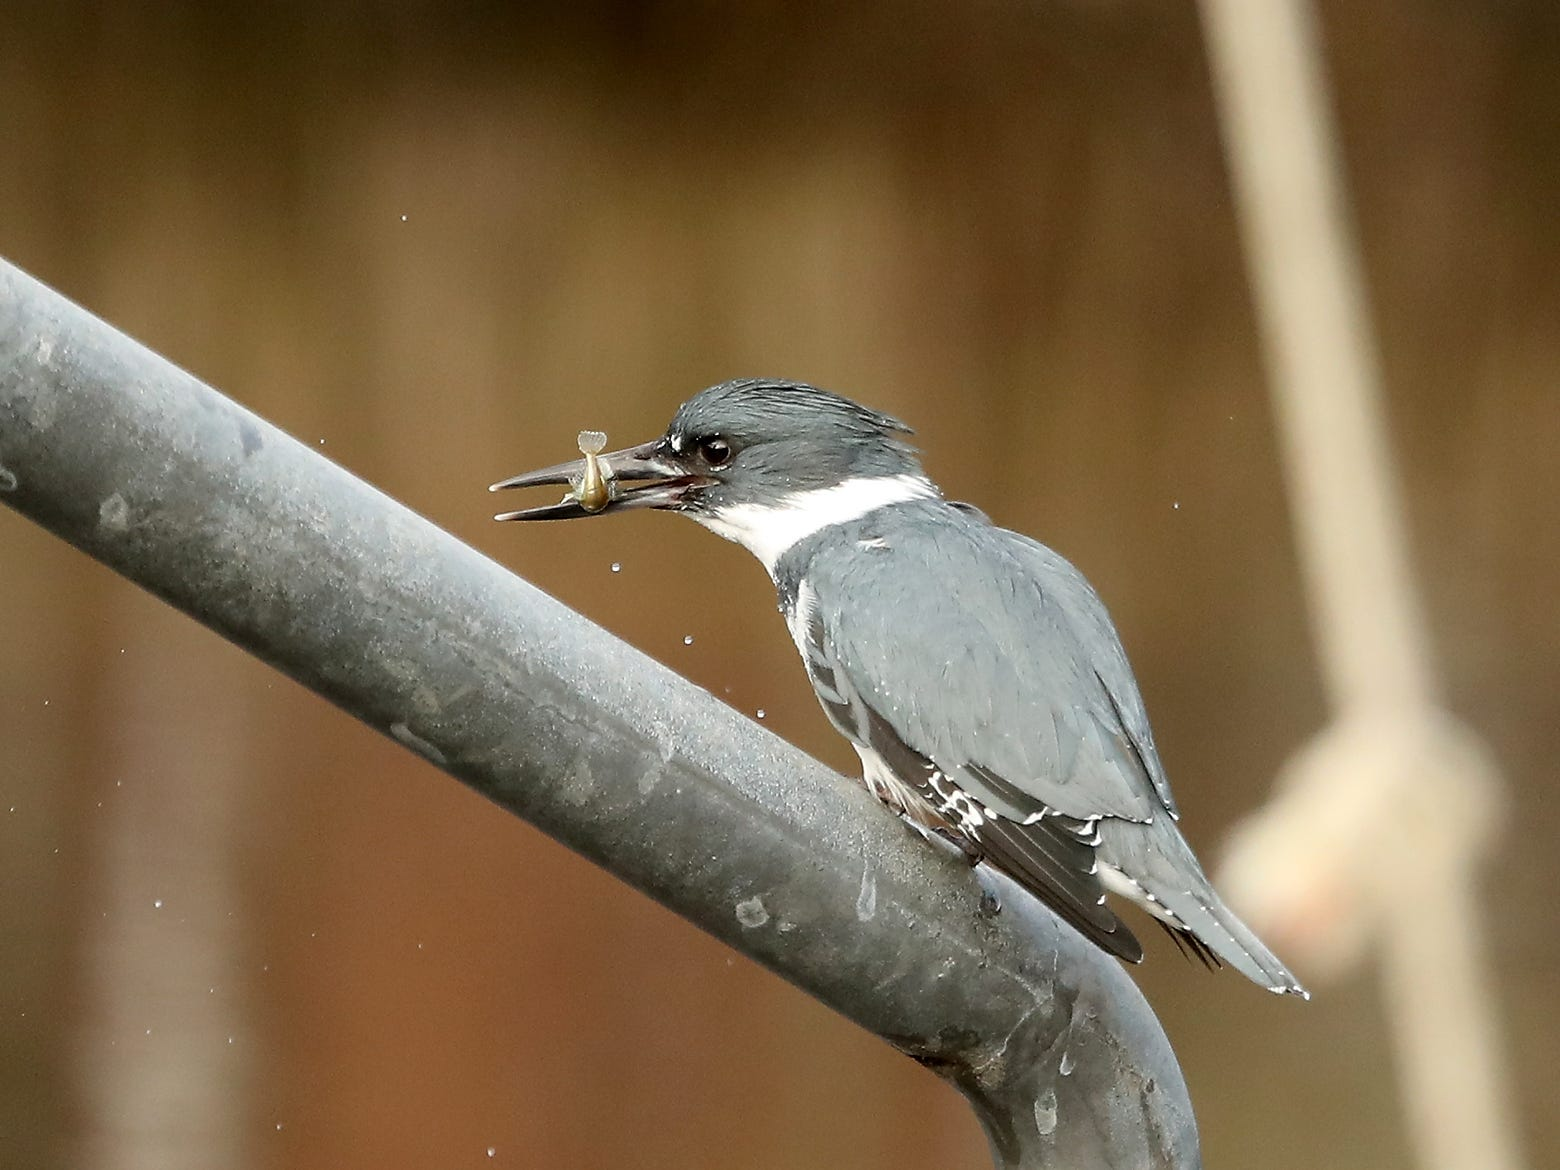 A belted kingfisher snacks on a small fish while perched on a railing along Point White Drive on Bainbridge Island on Sunday, February 24, 2019.